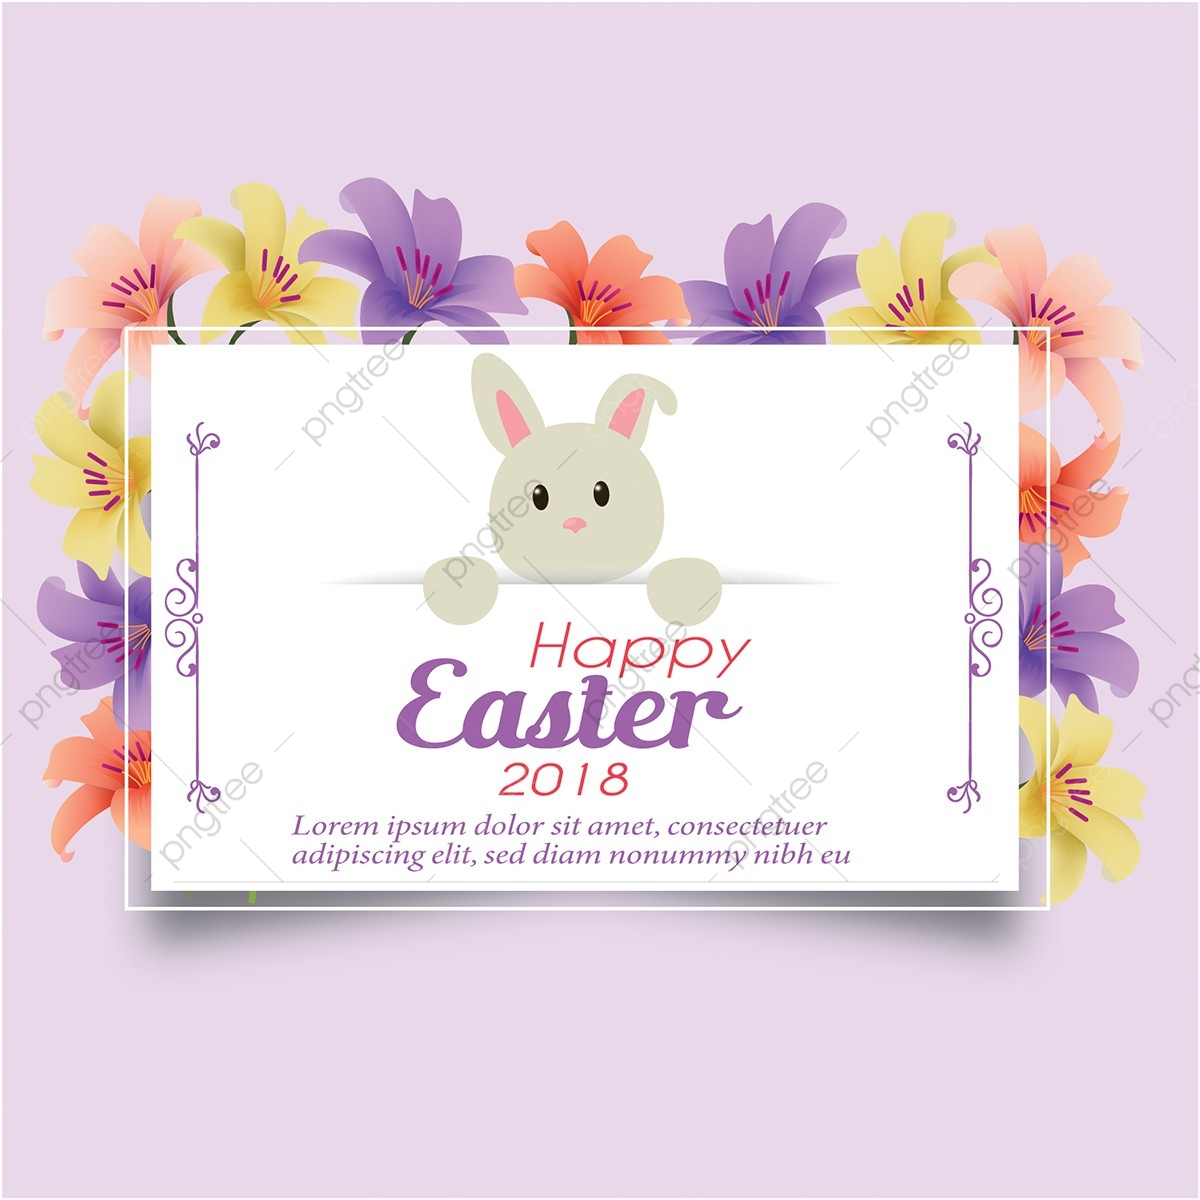 Happy Easter 2018, Easter, Cliparts, Happy Easter PNG and Vector.